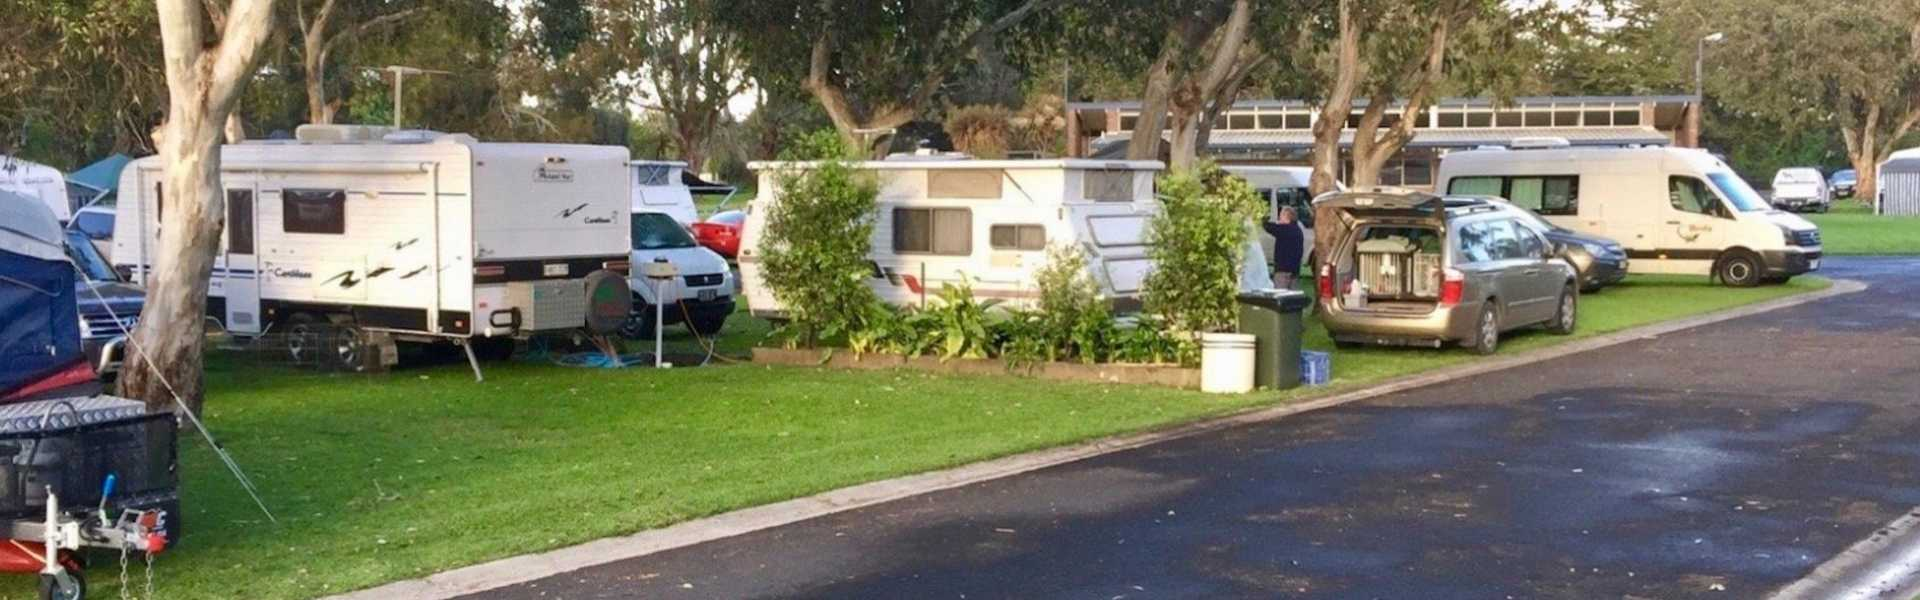 Kui Parks, Millicent Lakeside Caravan Park, Sites